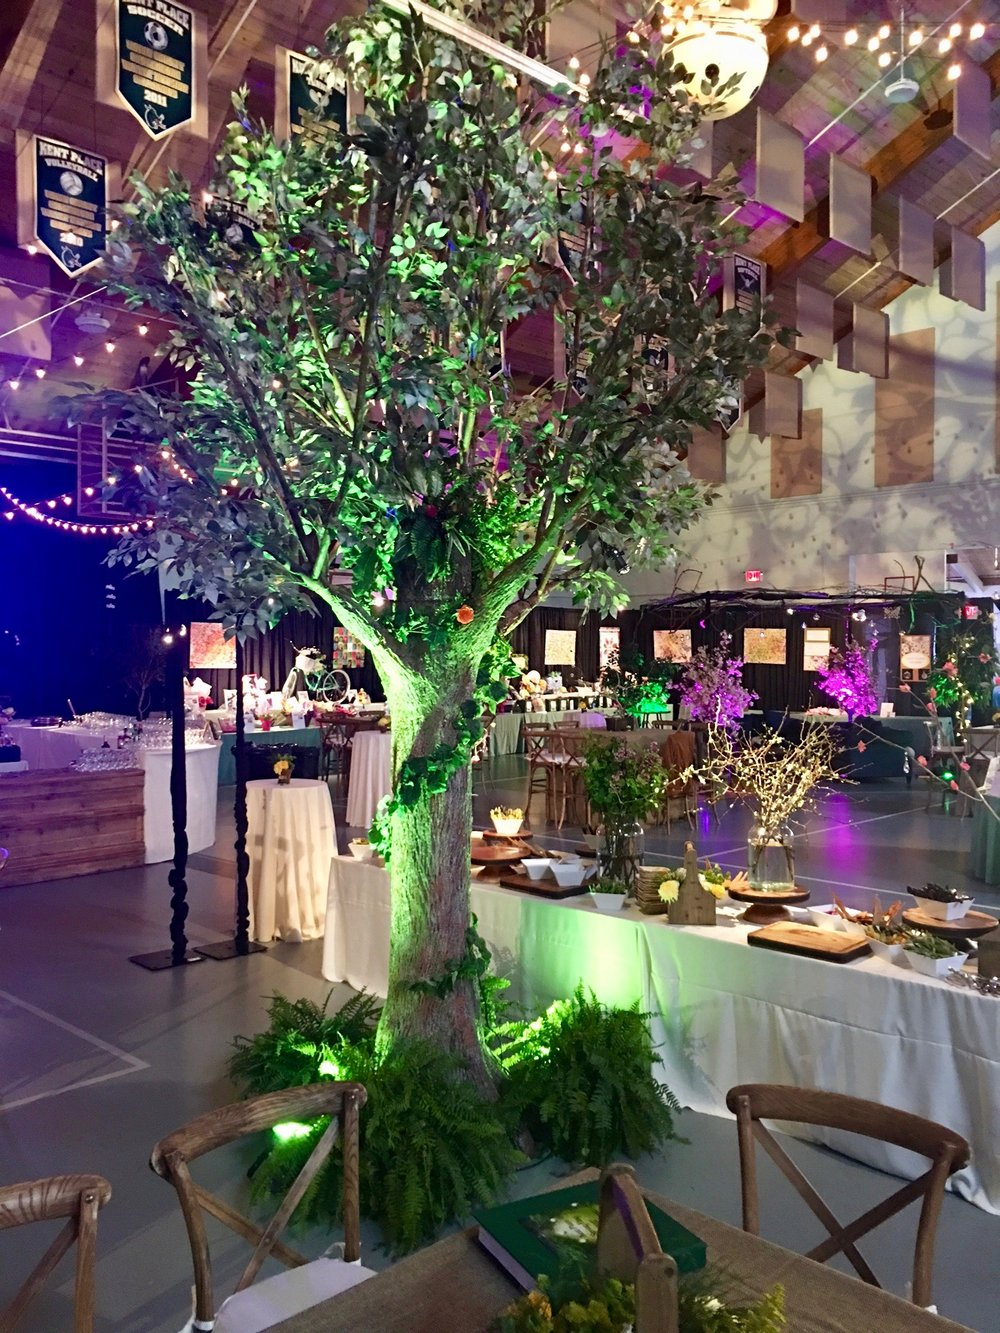 NJ_event_decor_design_rentals_prop_tree_school_gala_fundraiser_auction.jpeg